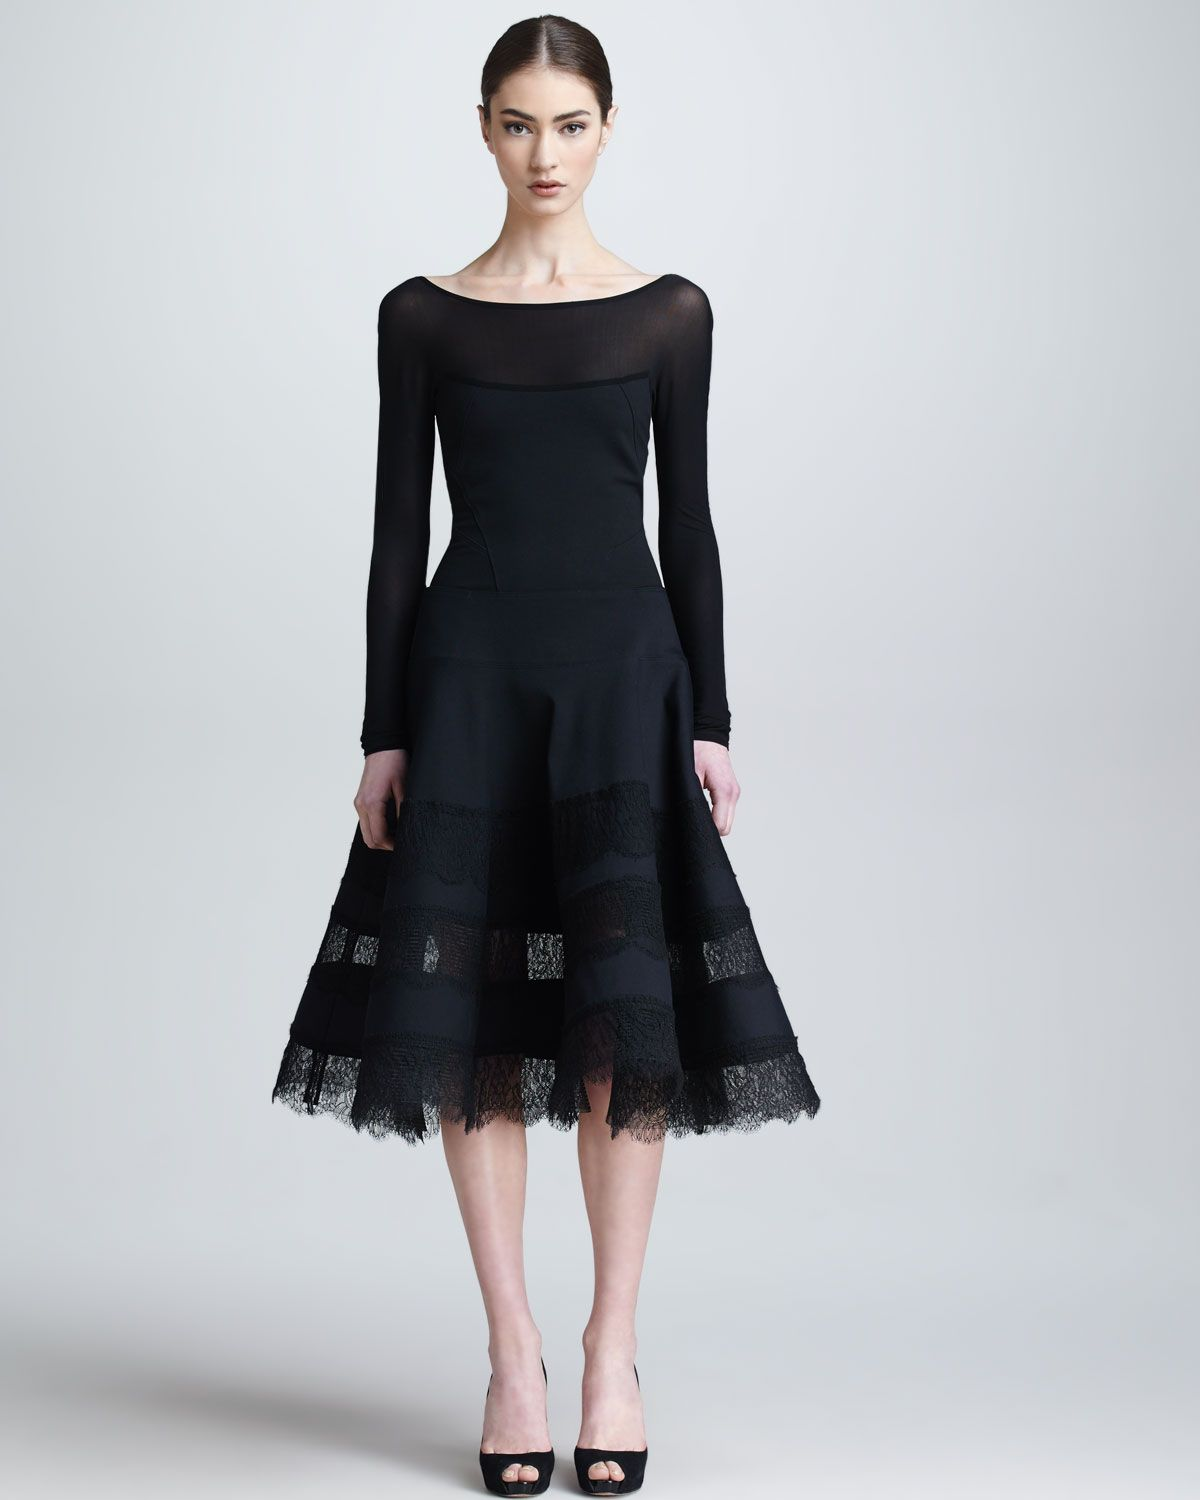 Donna karan lace jersey long sleeve dress black for Donna karan wedding dresses